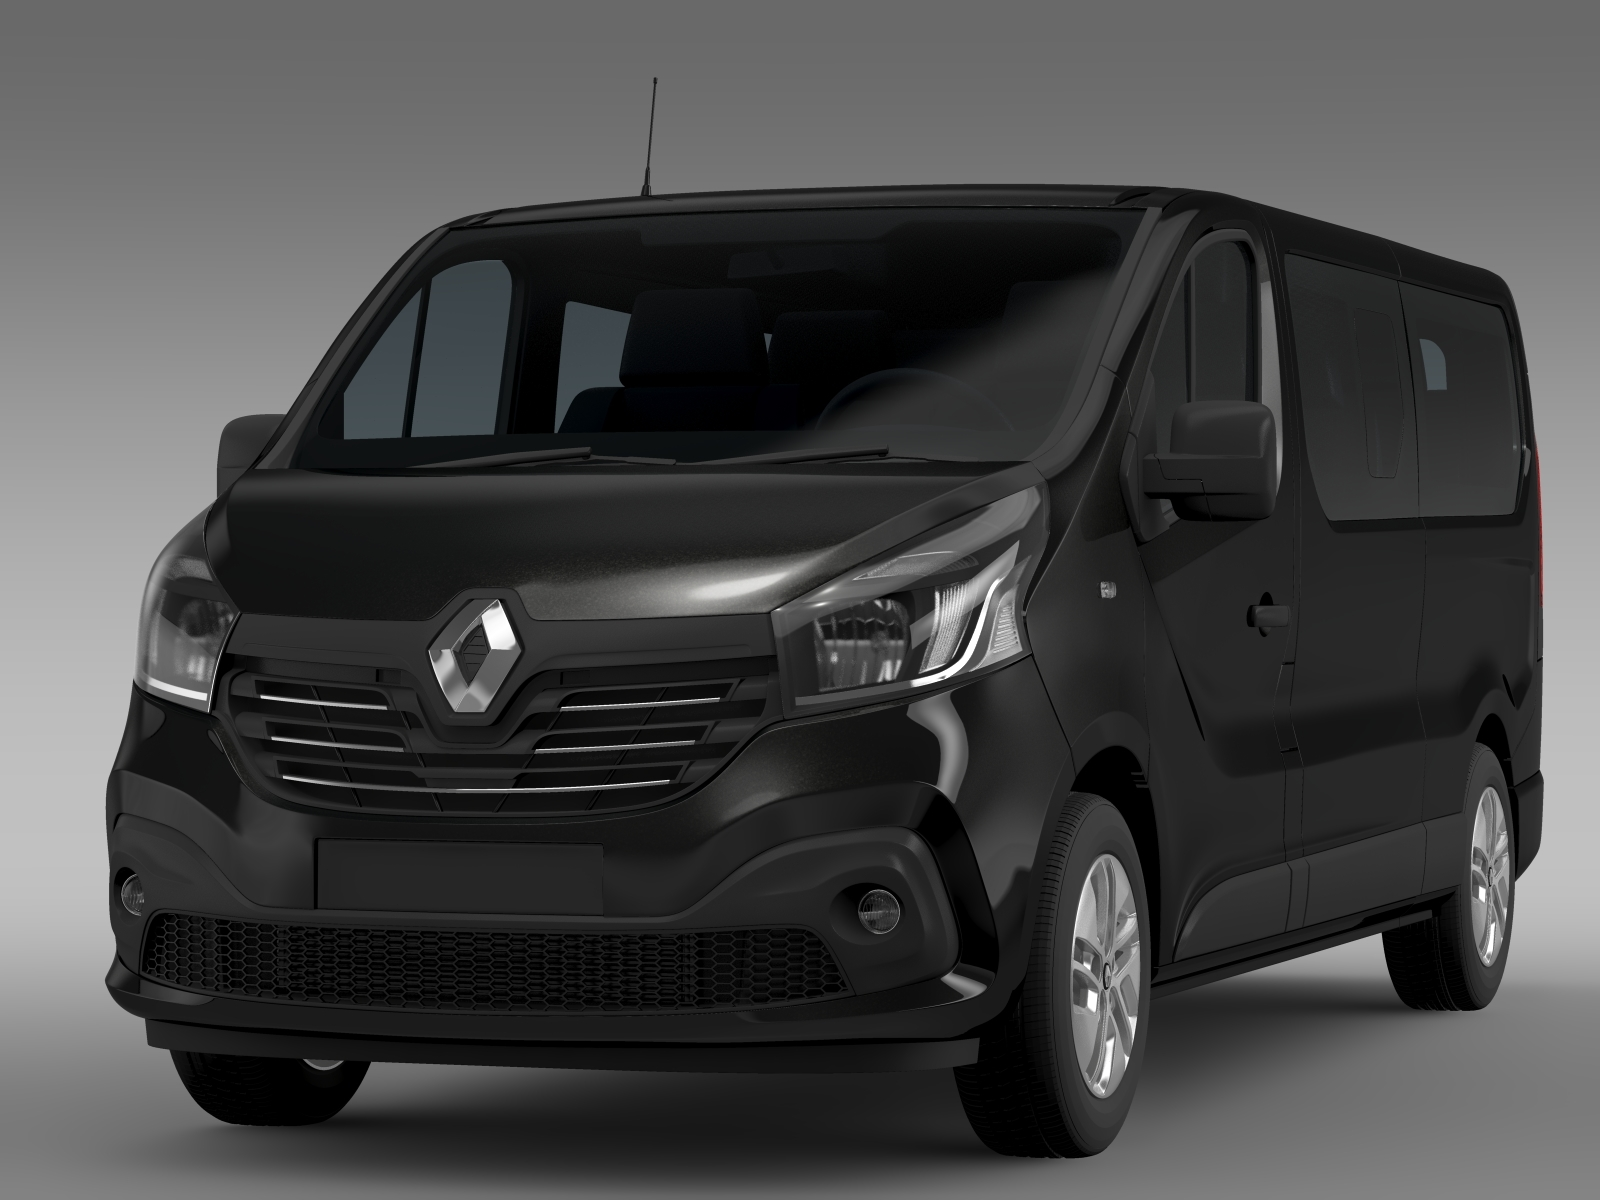 renault trafic minibus l2h1 2015 by creator 3d 3docean. Black Bedroom Furniture Sets. Home Design Ideas